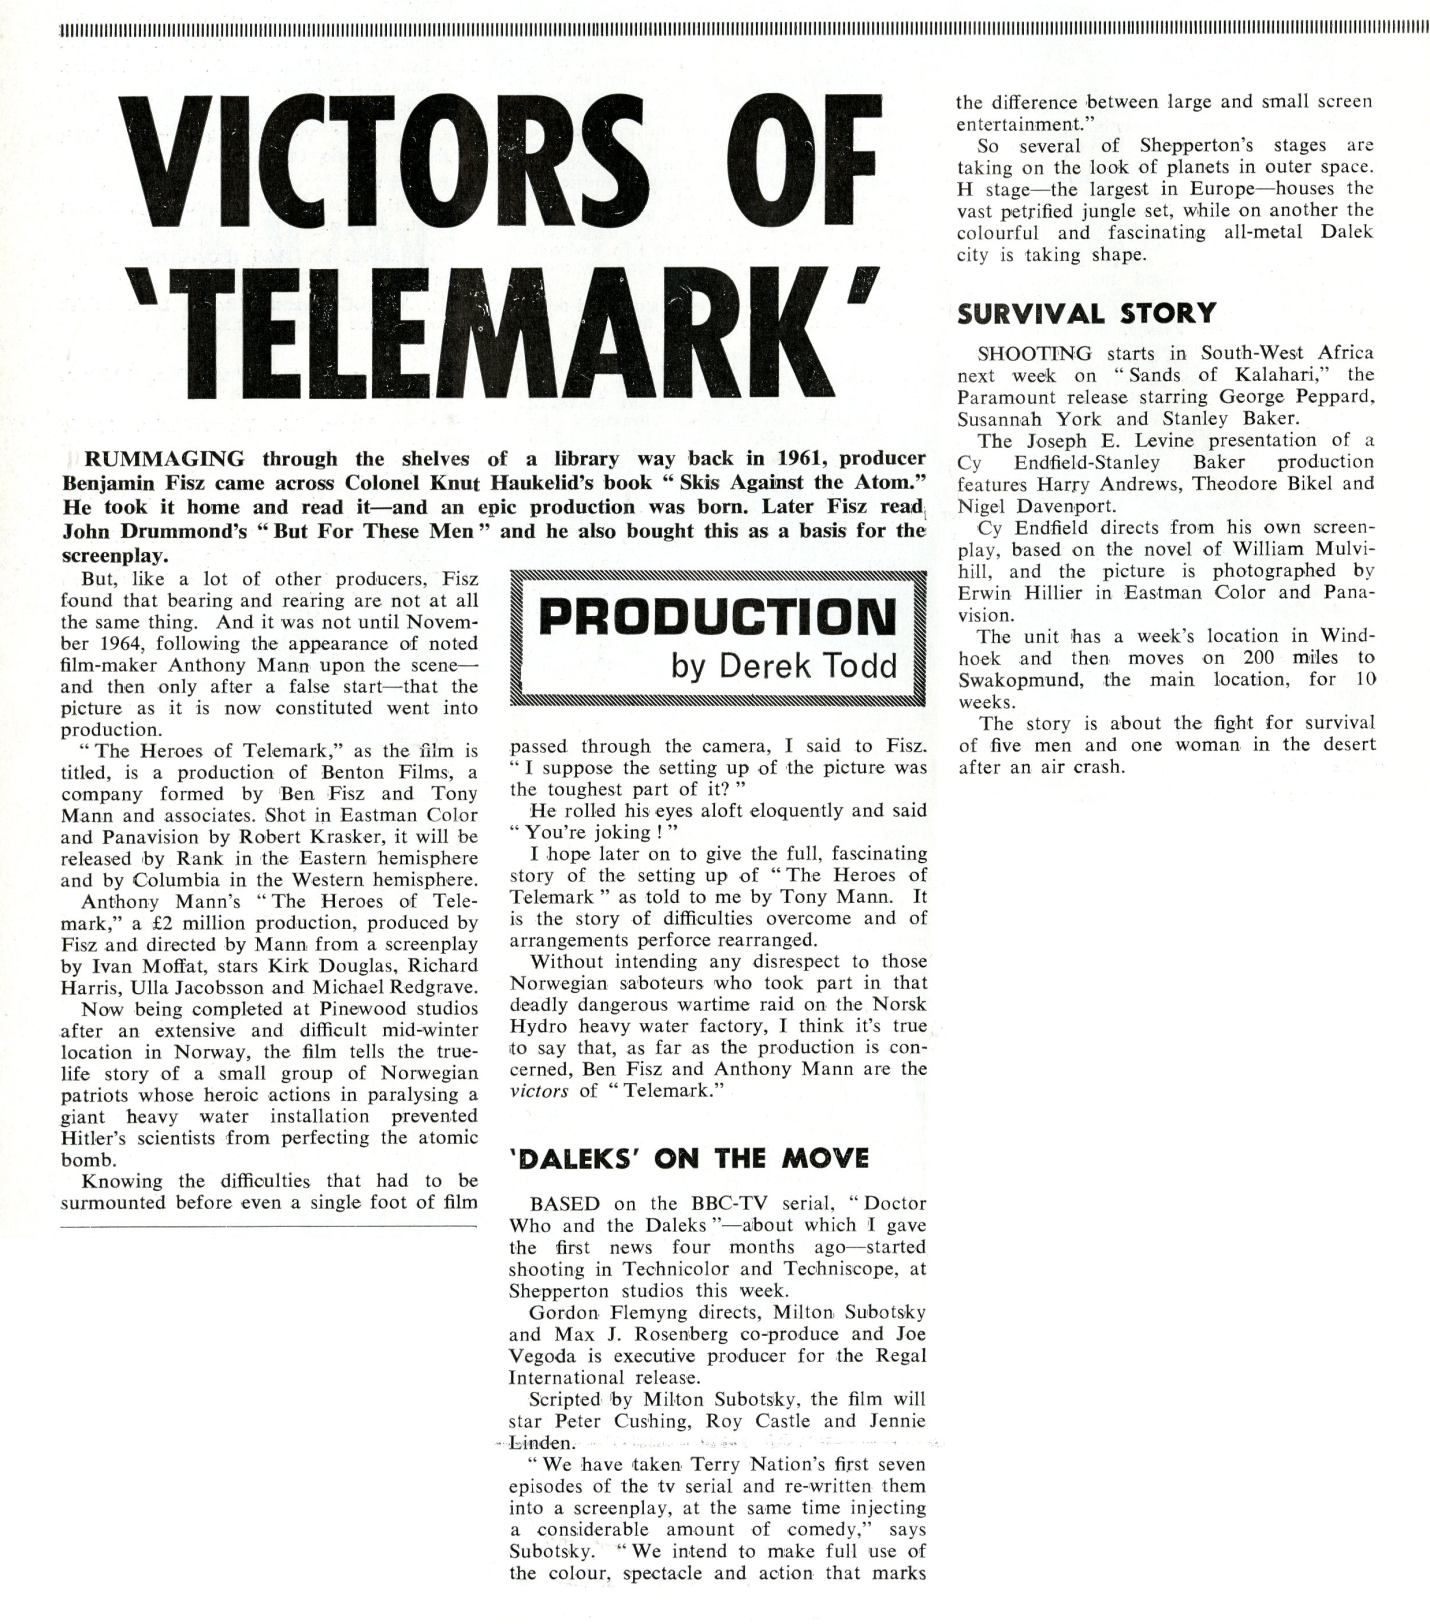 Kine Weekly, 11 March 1965